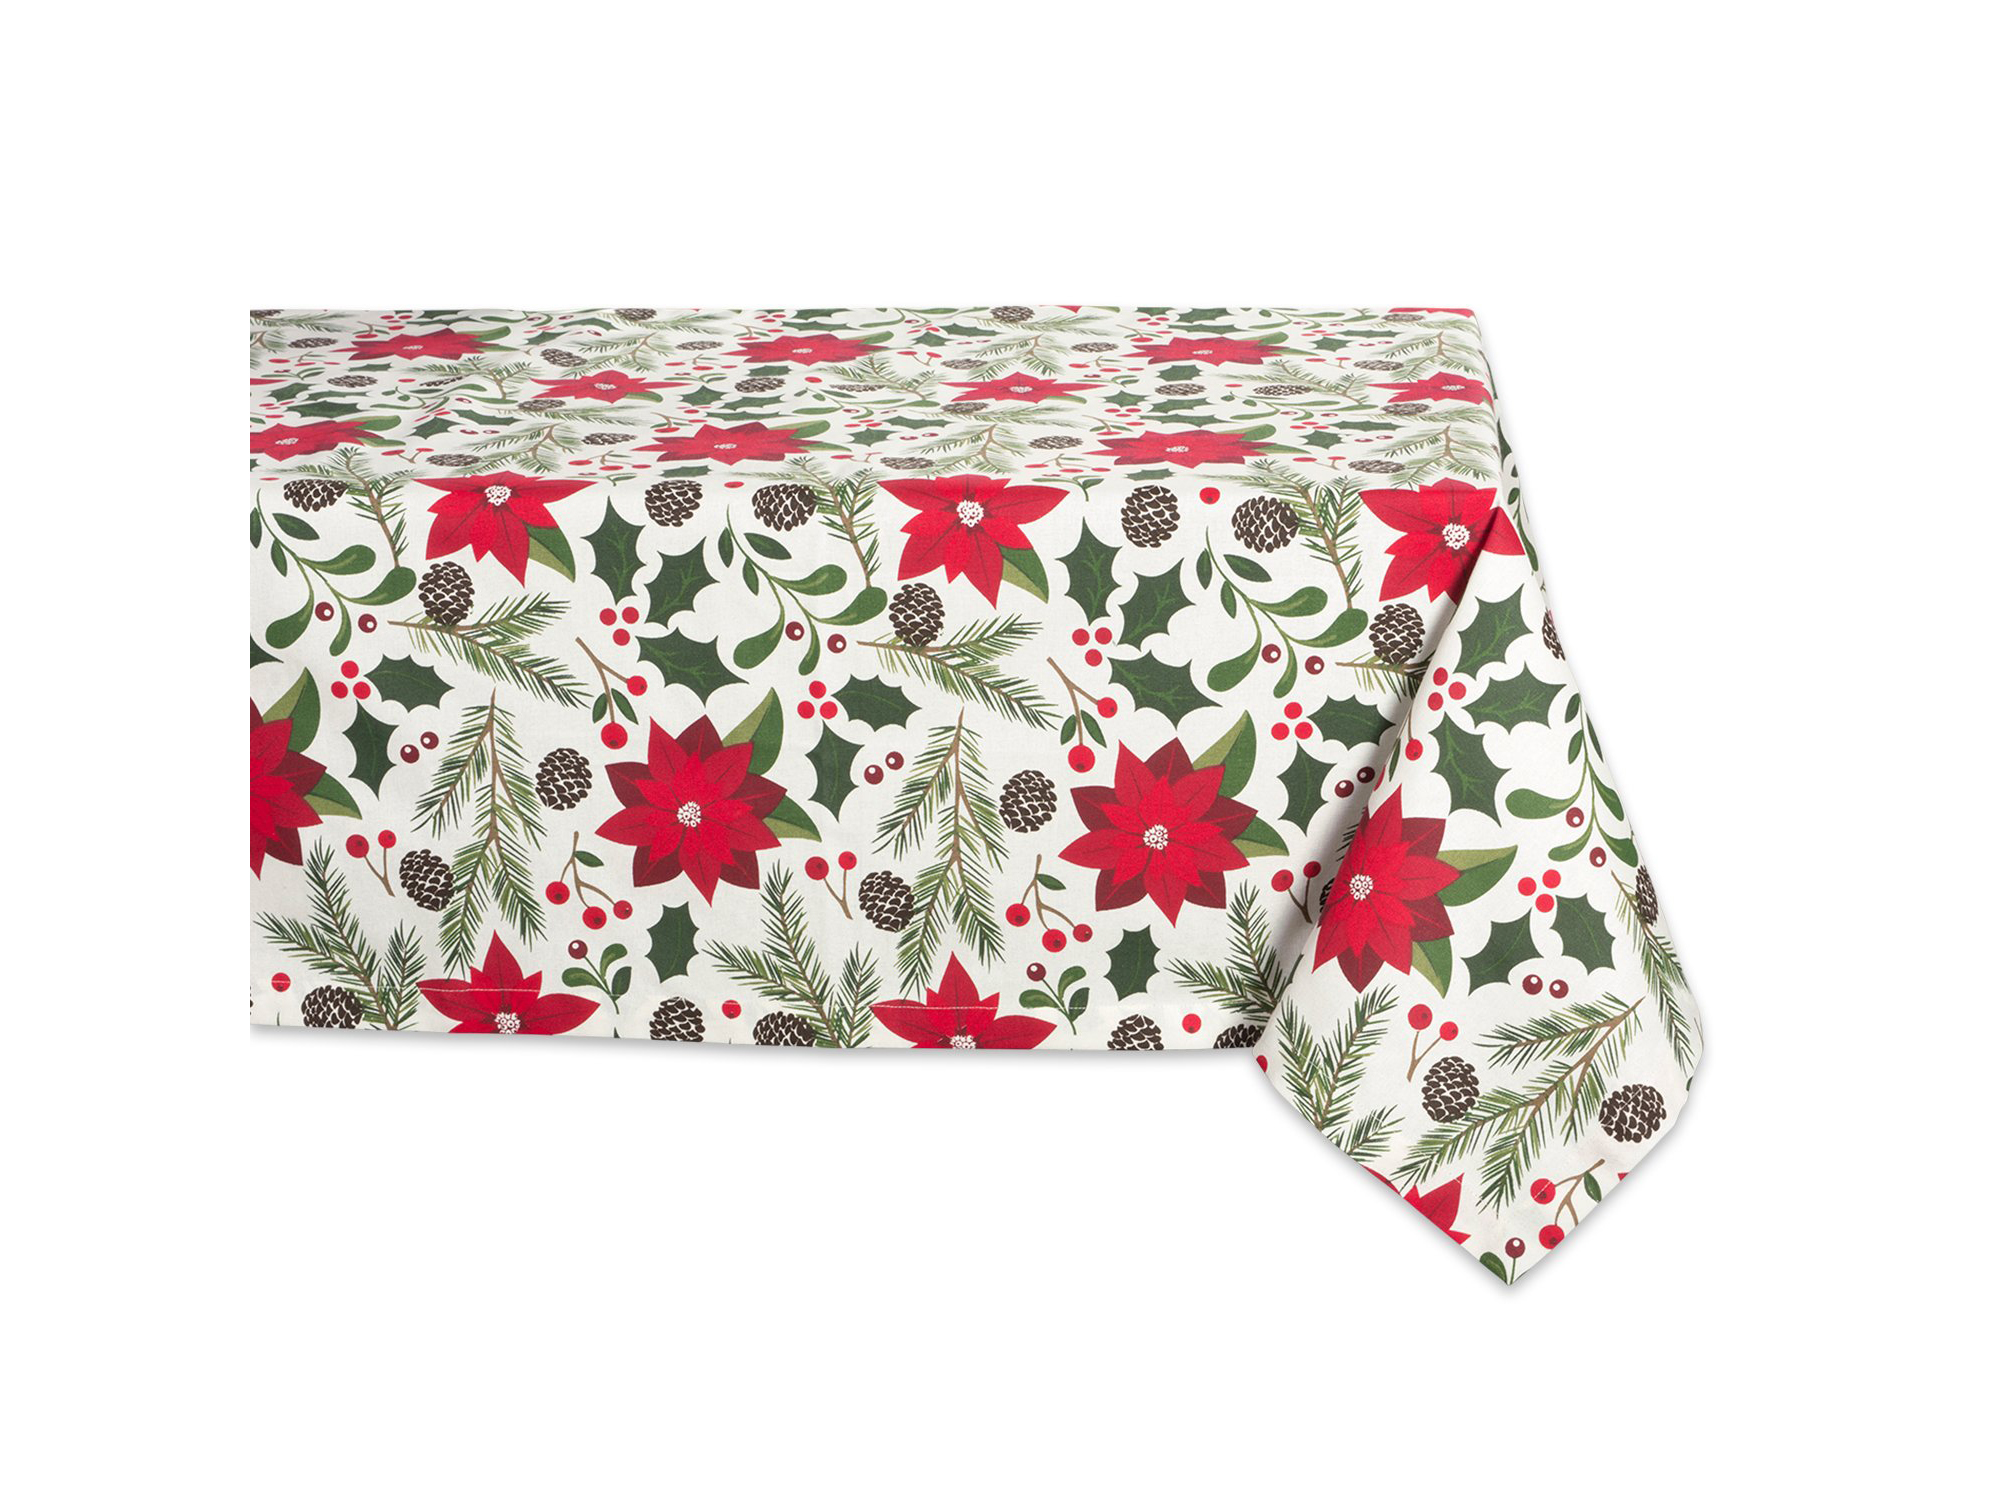 Woodland Christmas Tablecloth